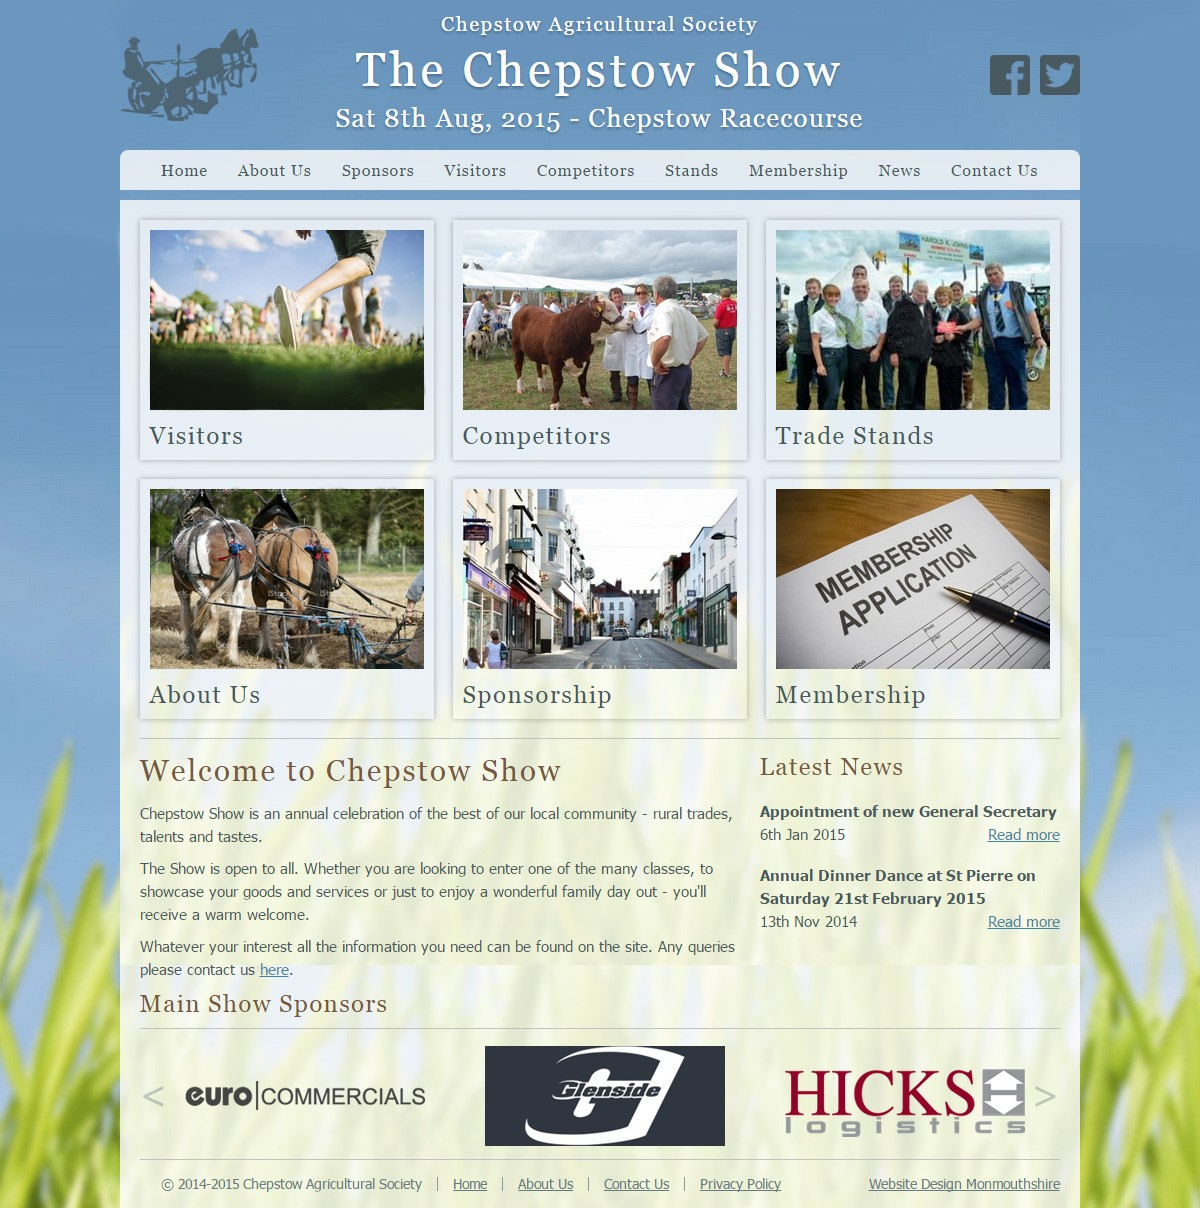 The Chepstow Show website